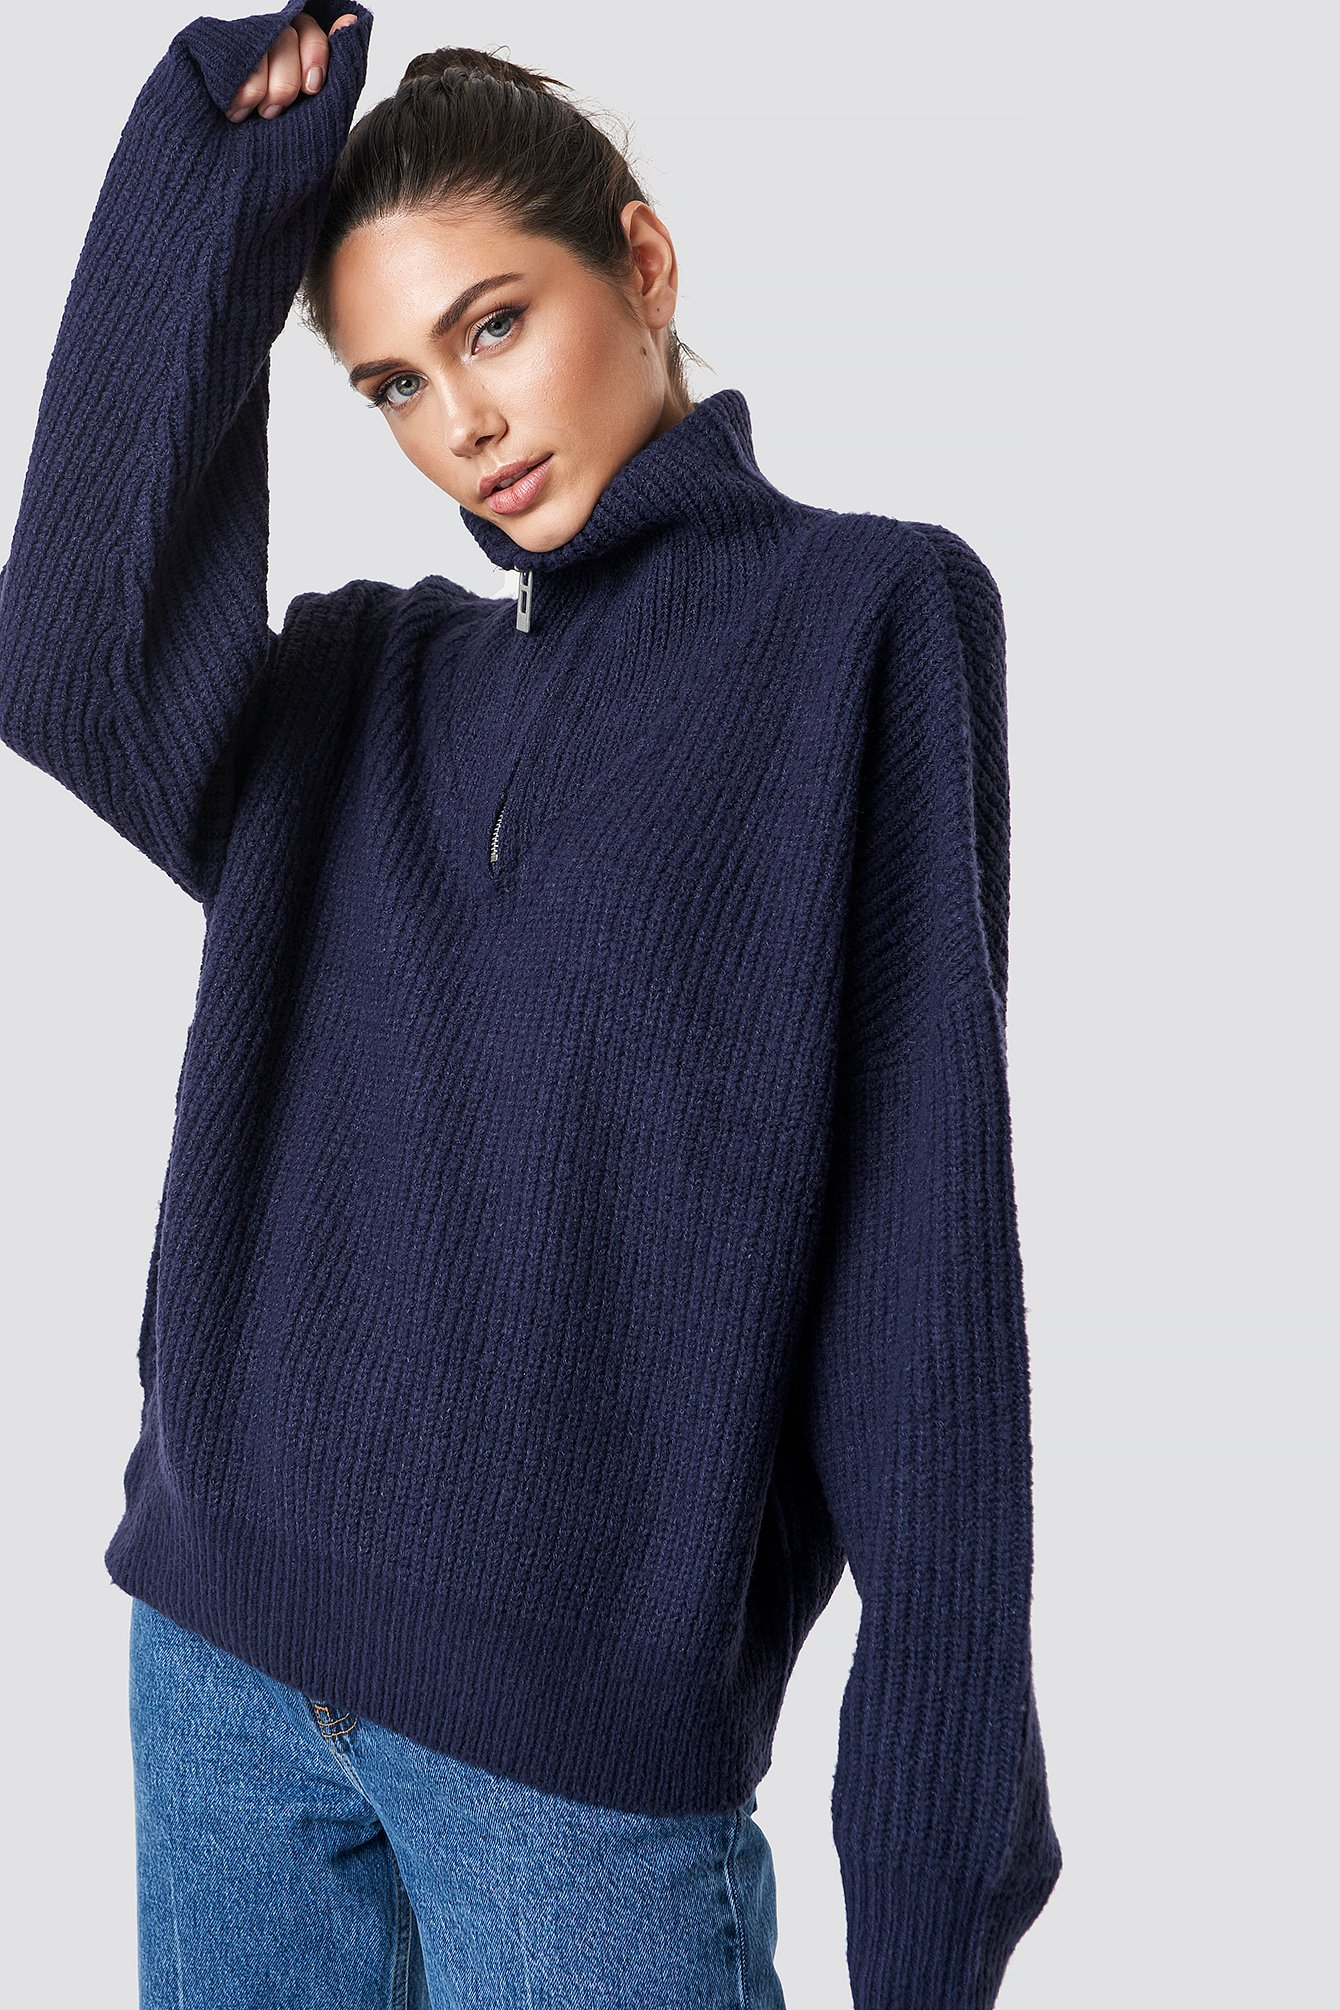 na-kd trend -  Front Zipper Knitted Sweater - Blue,Navy